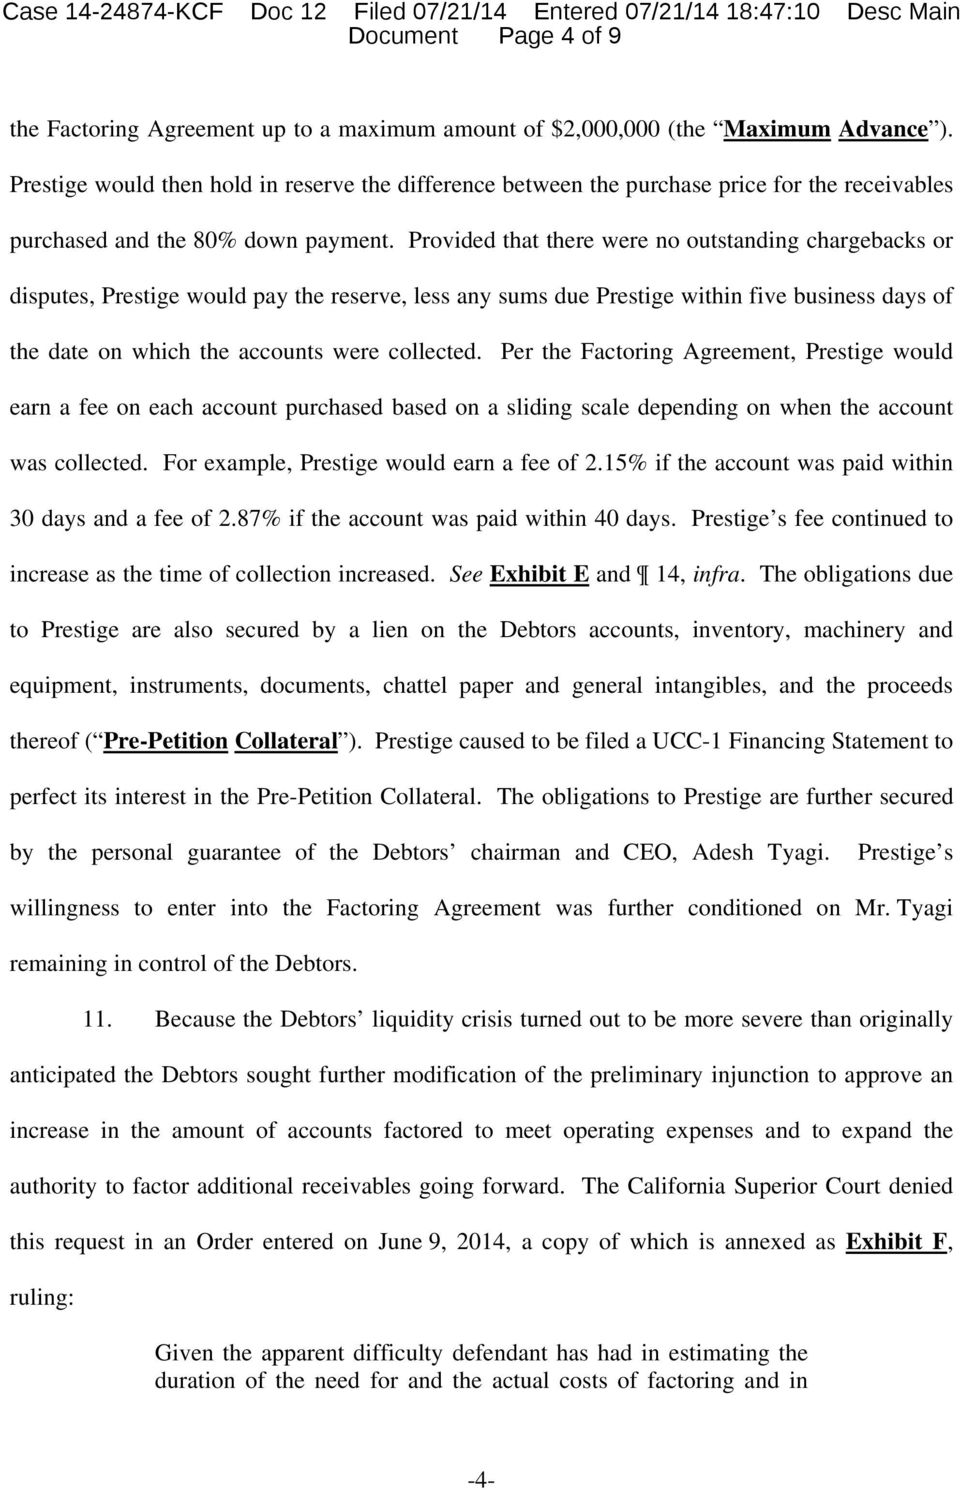 Provided that there were no outstanding chargebacks or disputes, Prestige would pay the reserve, less any sums due Prestige within five business days of the date on which the accounts were collected.